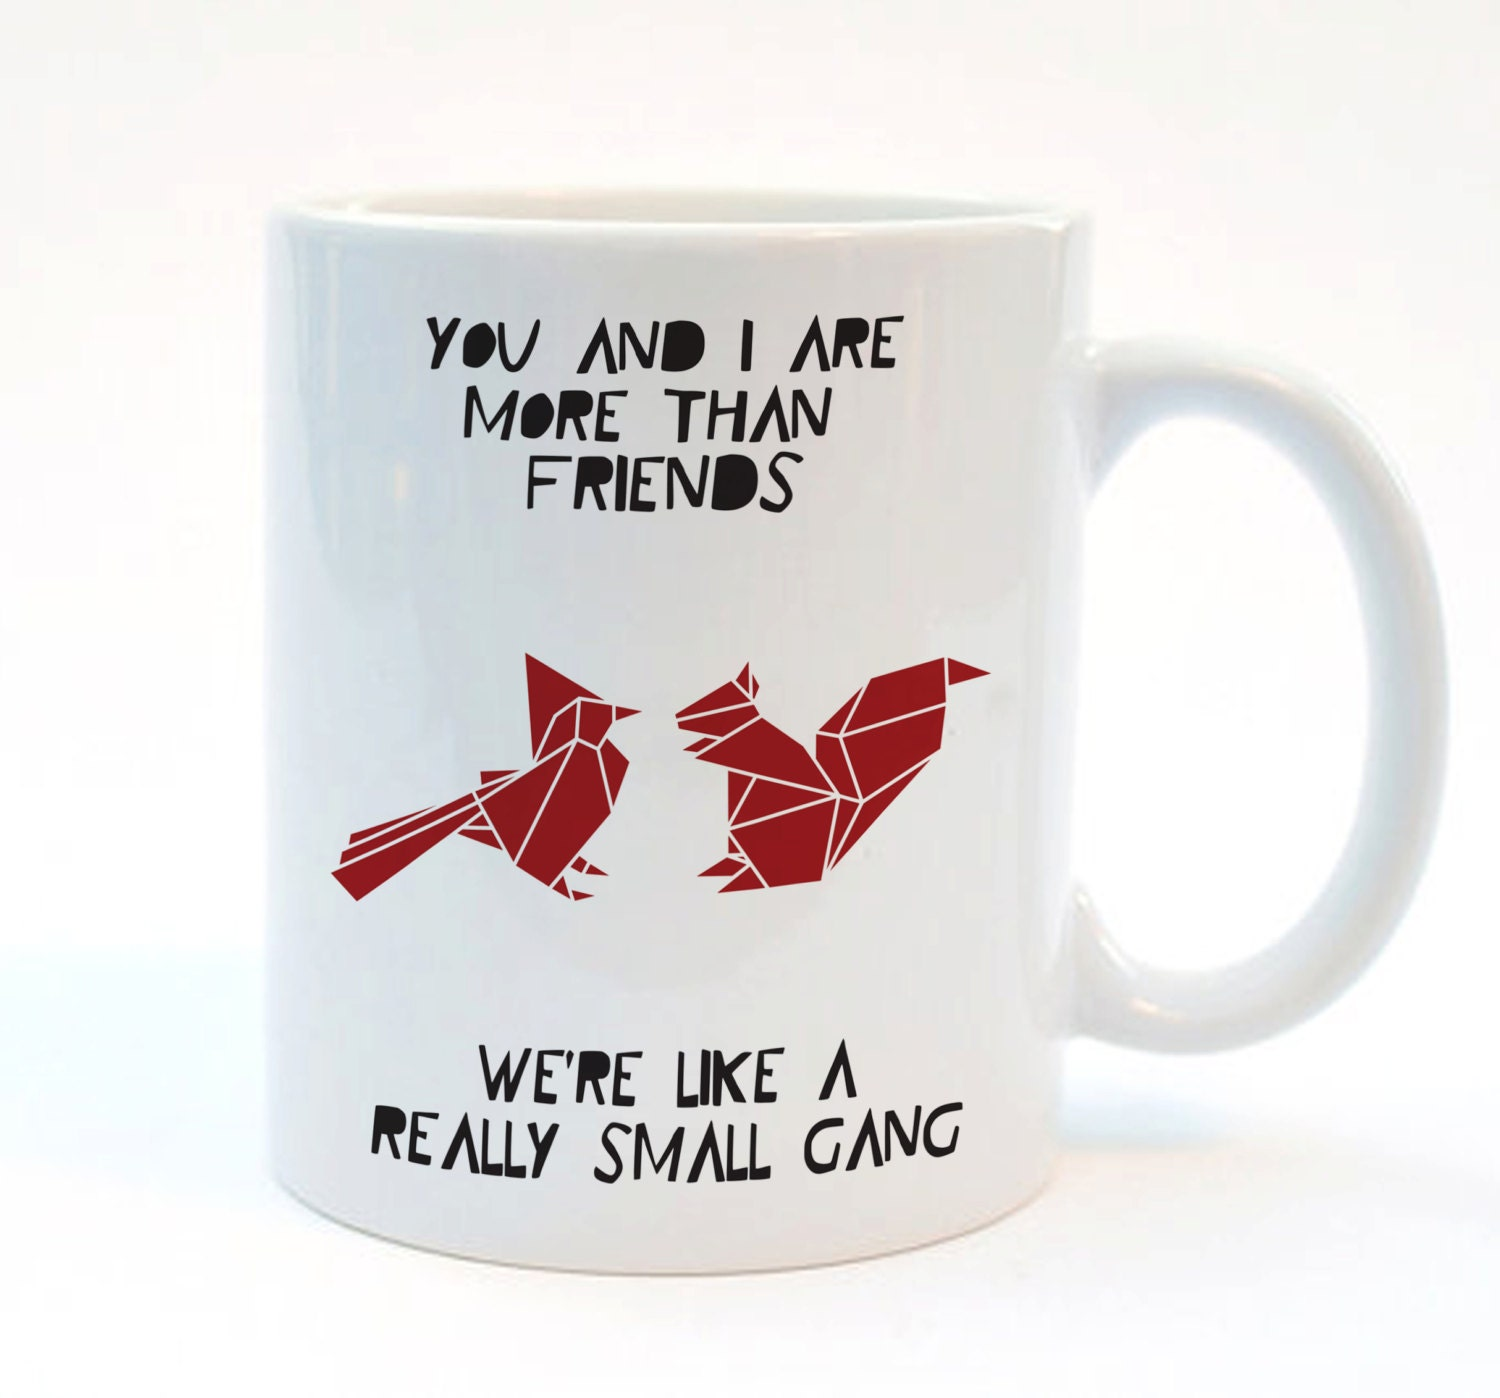 Quotes About Tea And Friendship Friendship Quotes For Mugs Best Coffee Mug Quotes On Mugs